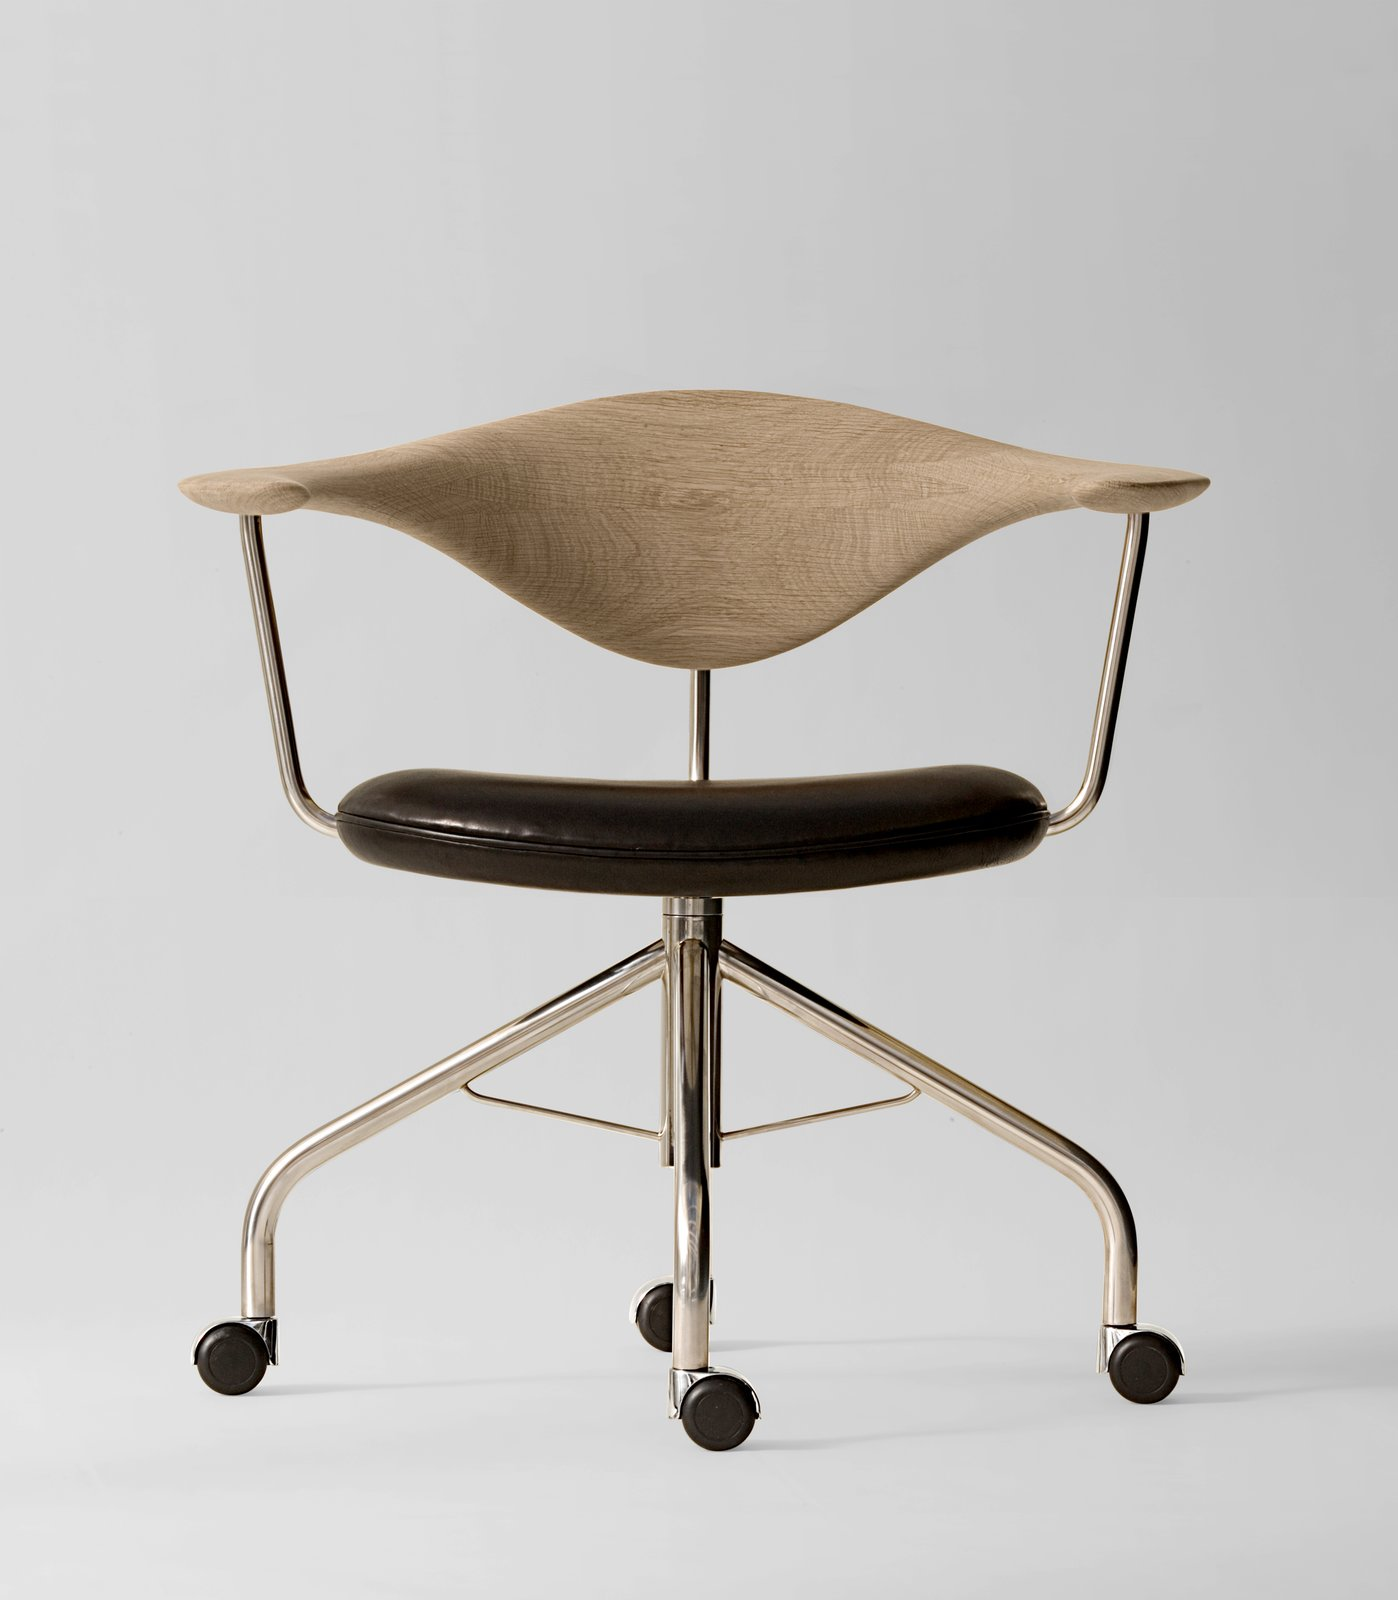 During a Danish furniture trade show, Dr. Eigill Snorrason critiqued the industry for not paying enough attention to ergonomics. The Swivel Chair (1955) Wegner's rejoinder of sorts, an elegant backrest of hand-carved wood that's been compared to a gently bent propeller. The smooth lines, thin profile and wheels invite a sure-footed slide across any office. Manufactured by PP Møbler. Photo by Jens Mourits Sørensen.  Photo 8 of 9 in 8 Iconic Chairs by Hans Wegner